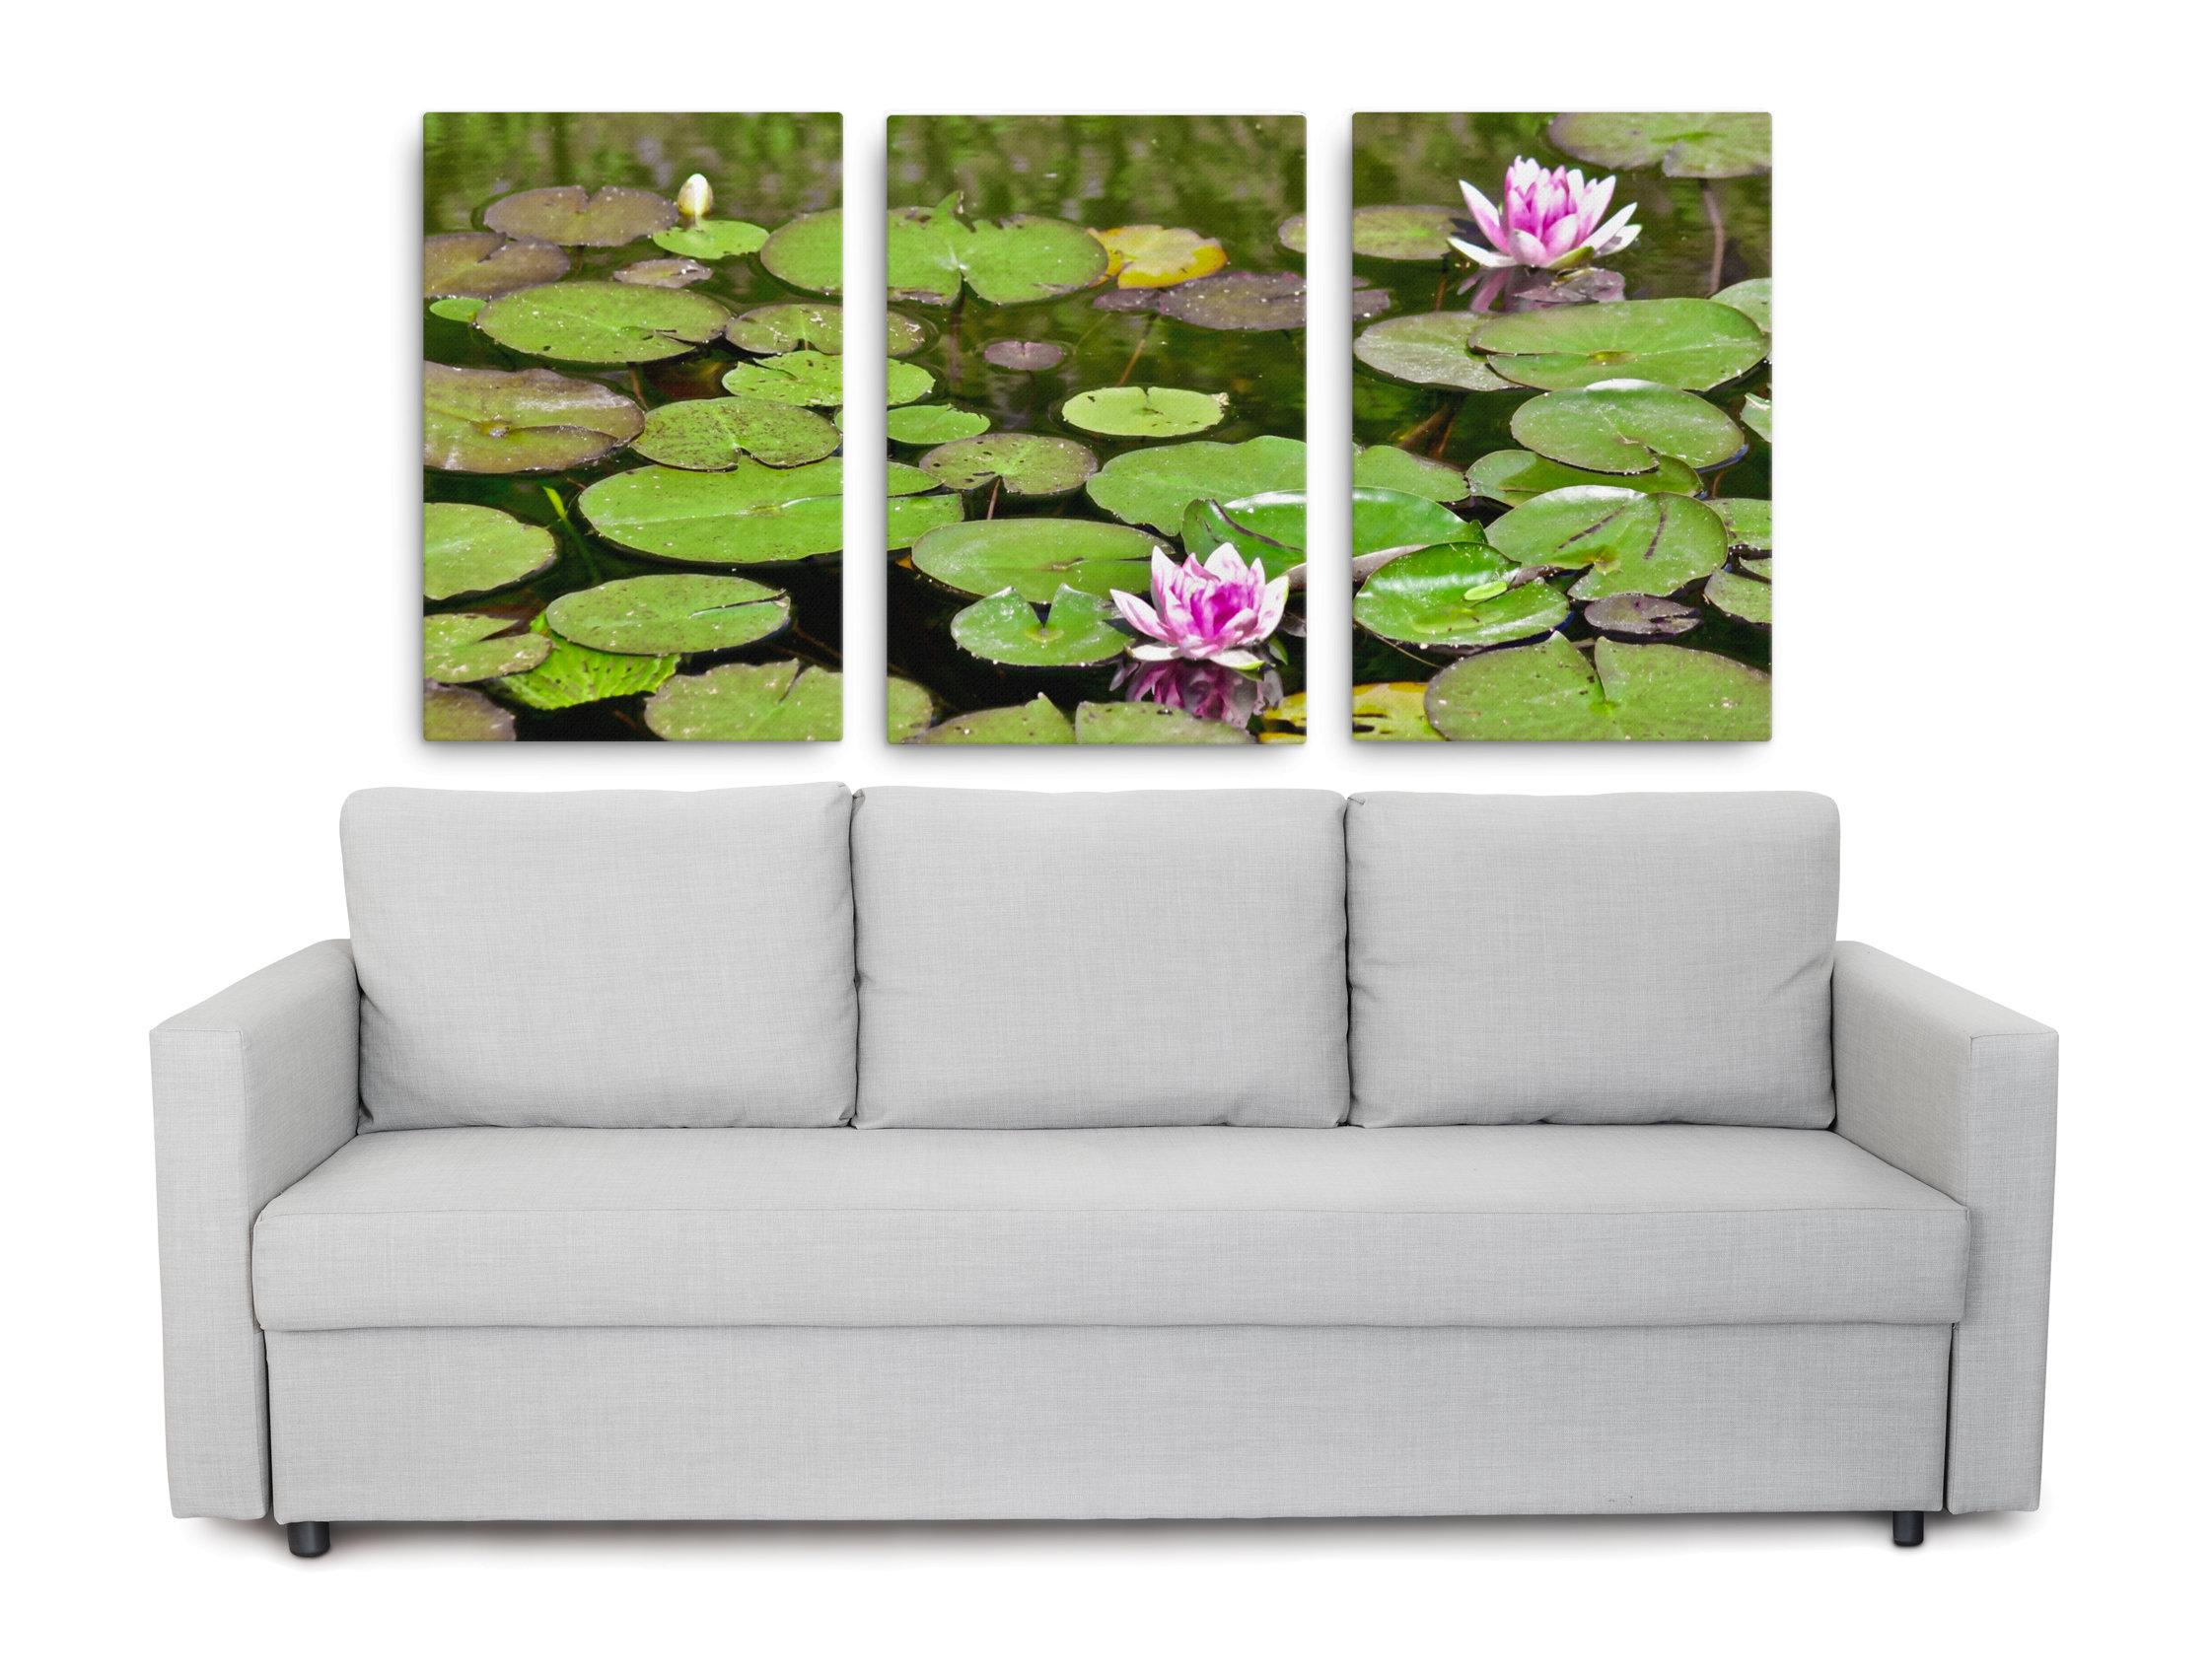 Pictures of pink water lilies in a pond as a triptych canvas print